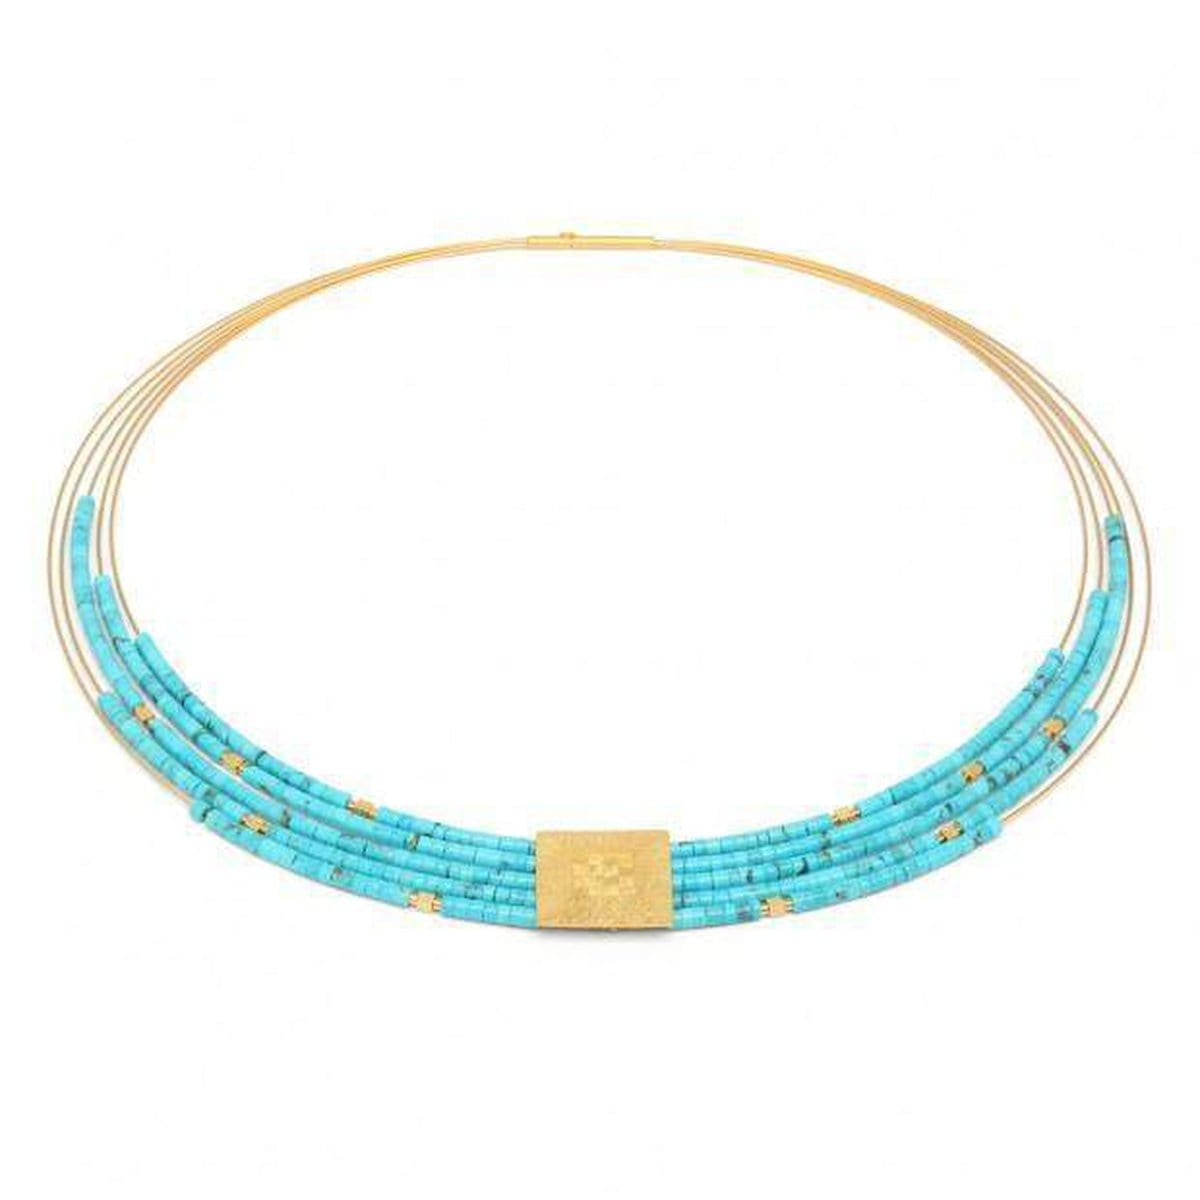 Felia Turquoise Necklace - 85091256-Bernd Wolf-Renee Taylor Gallery